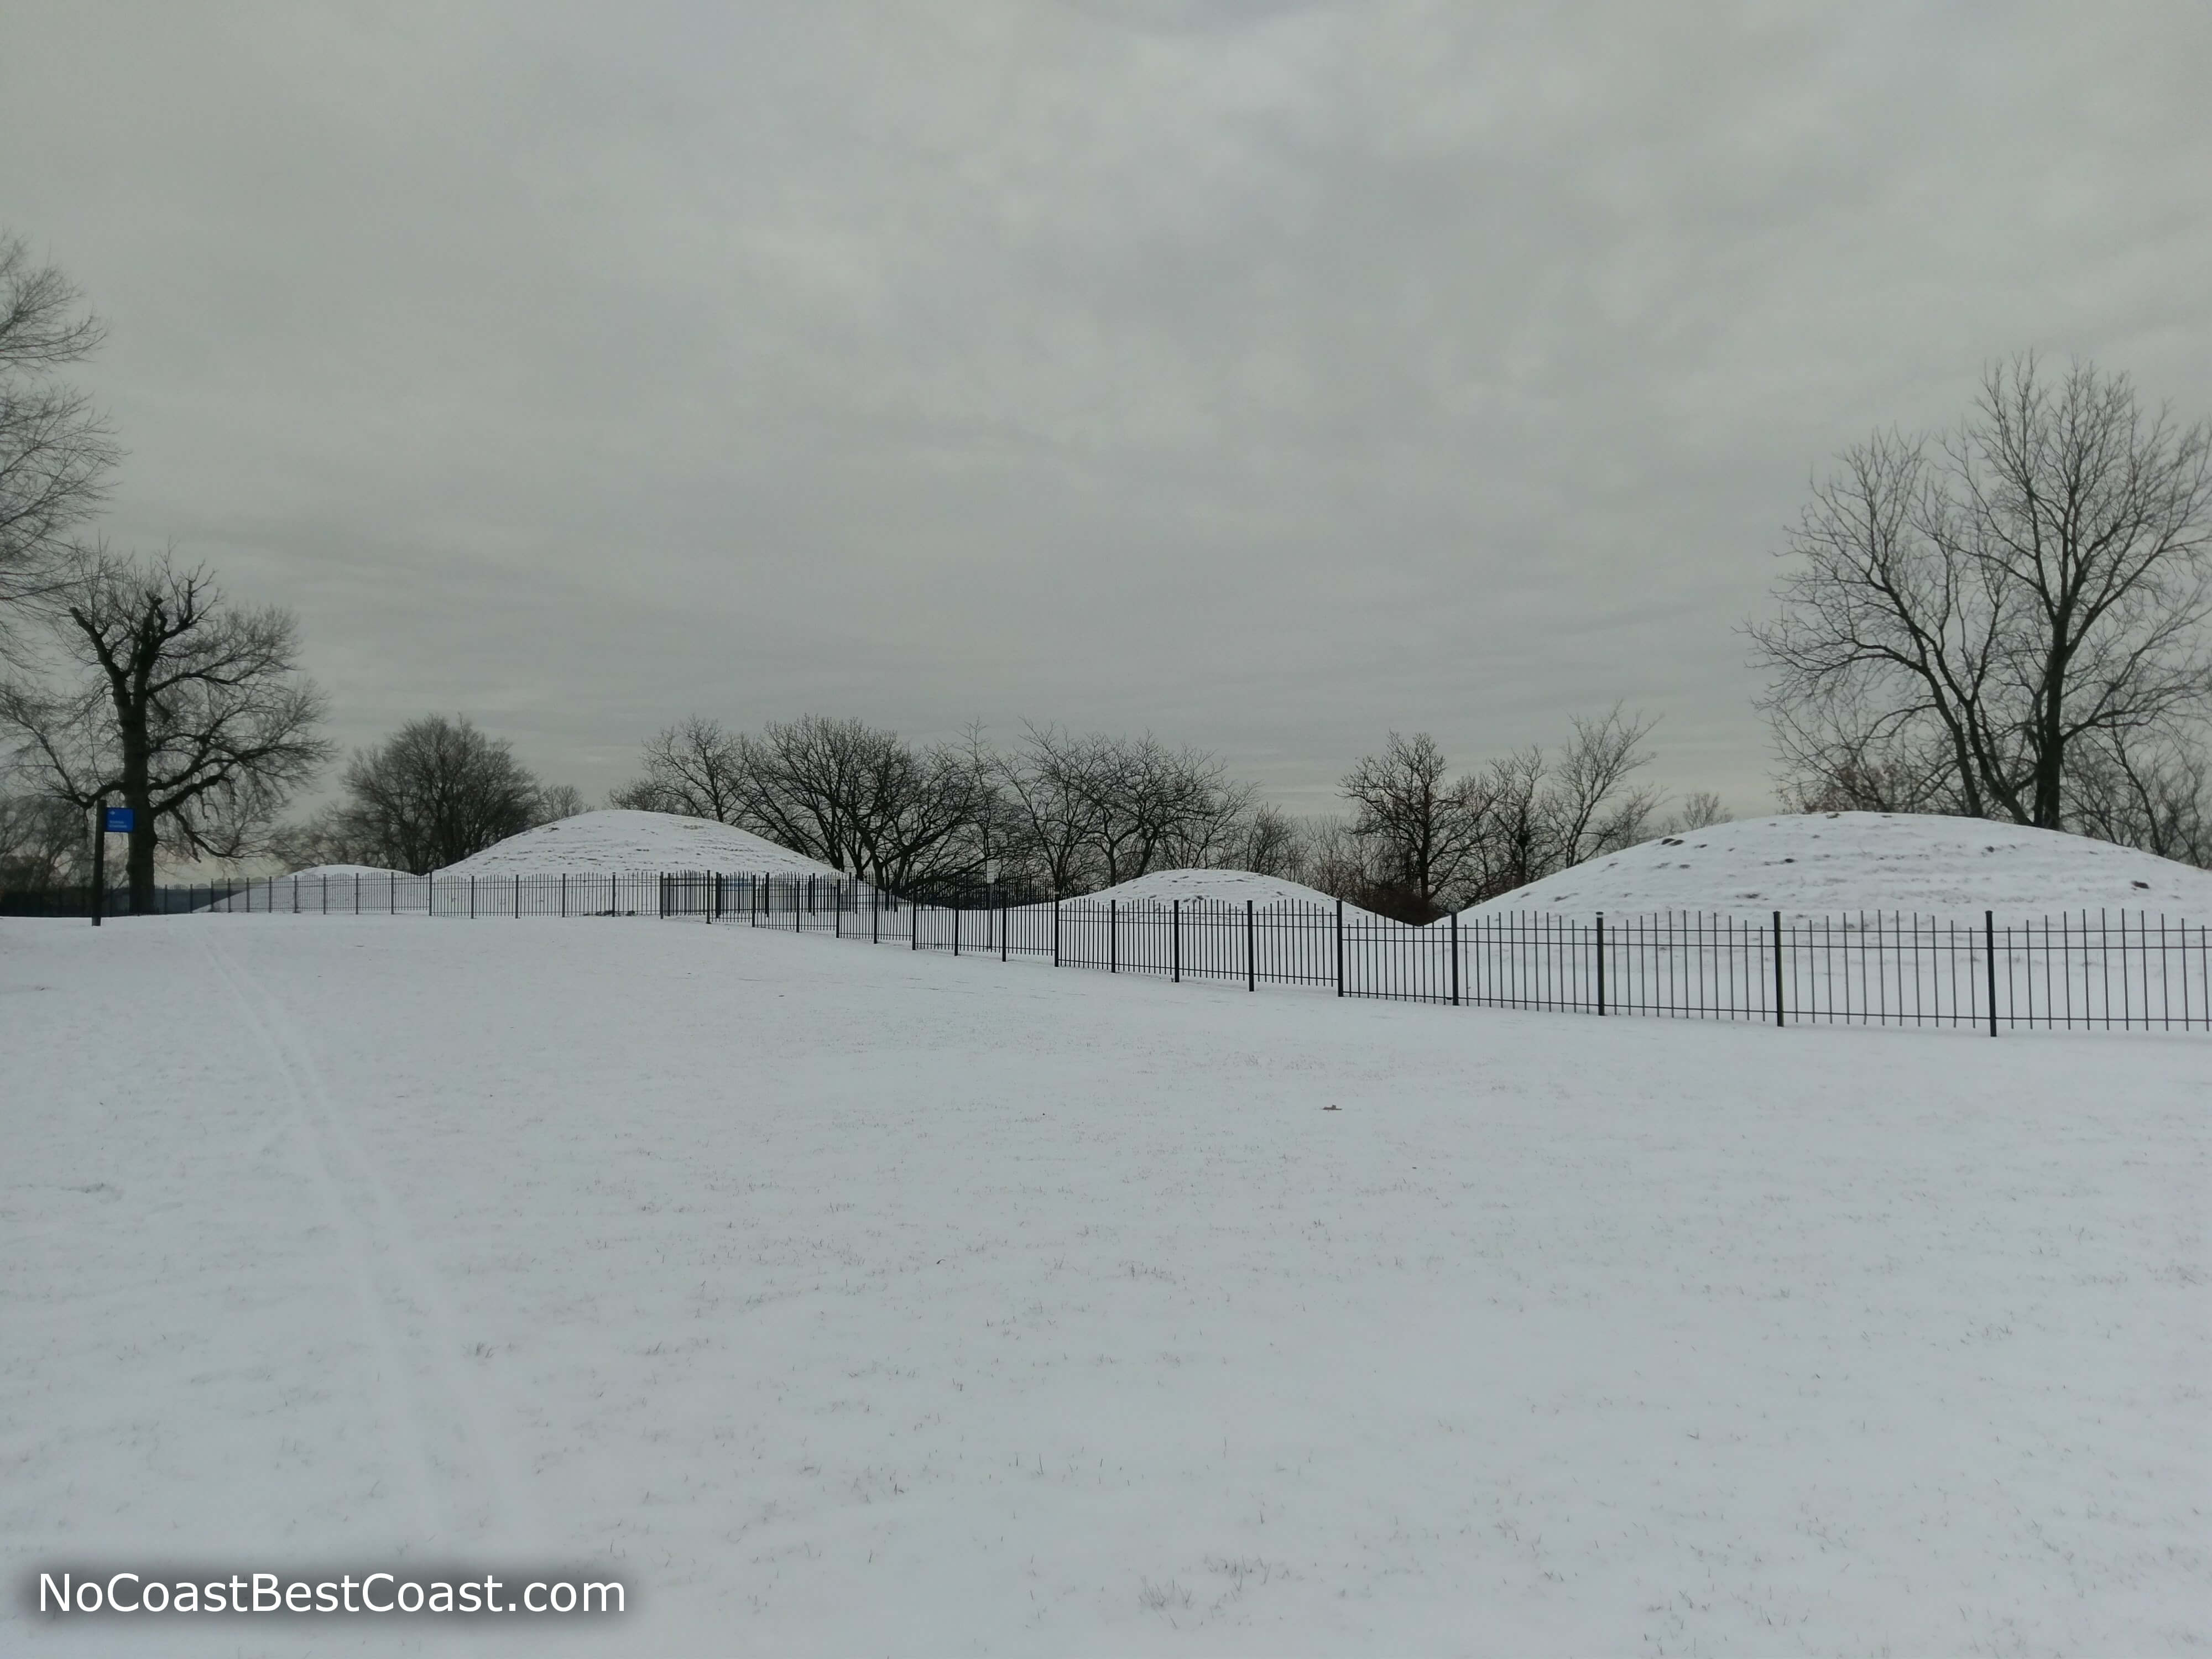 Snow covers these historic burial sites